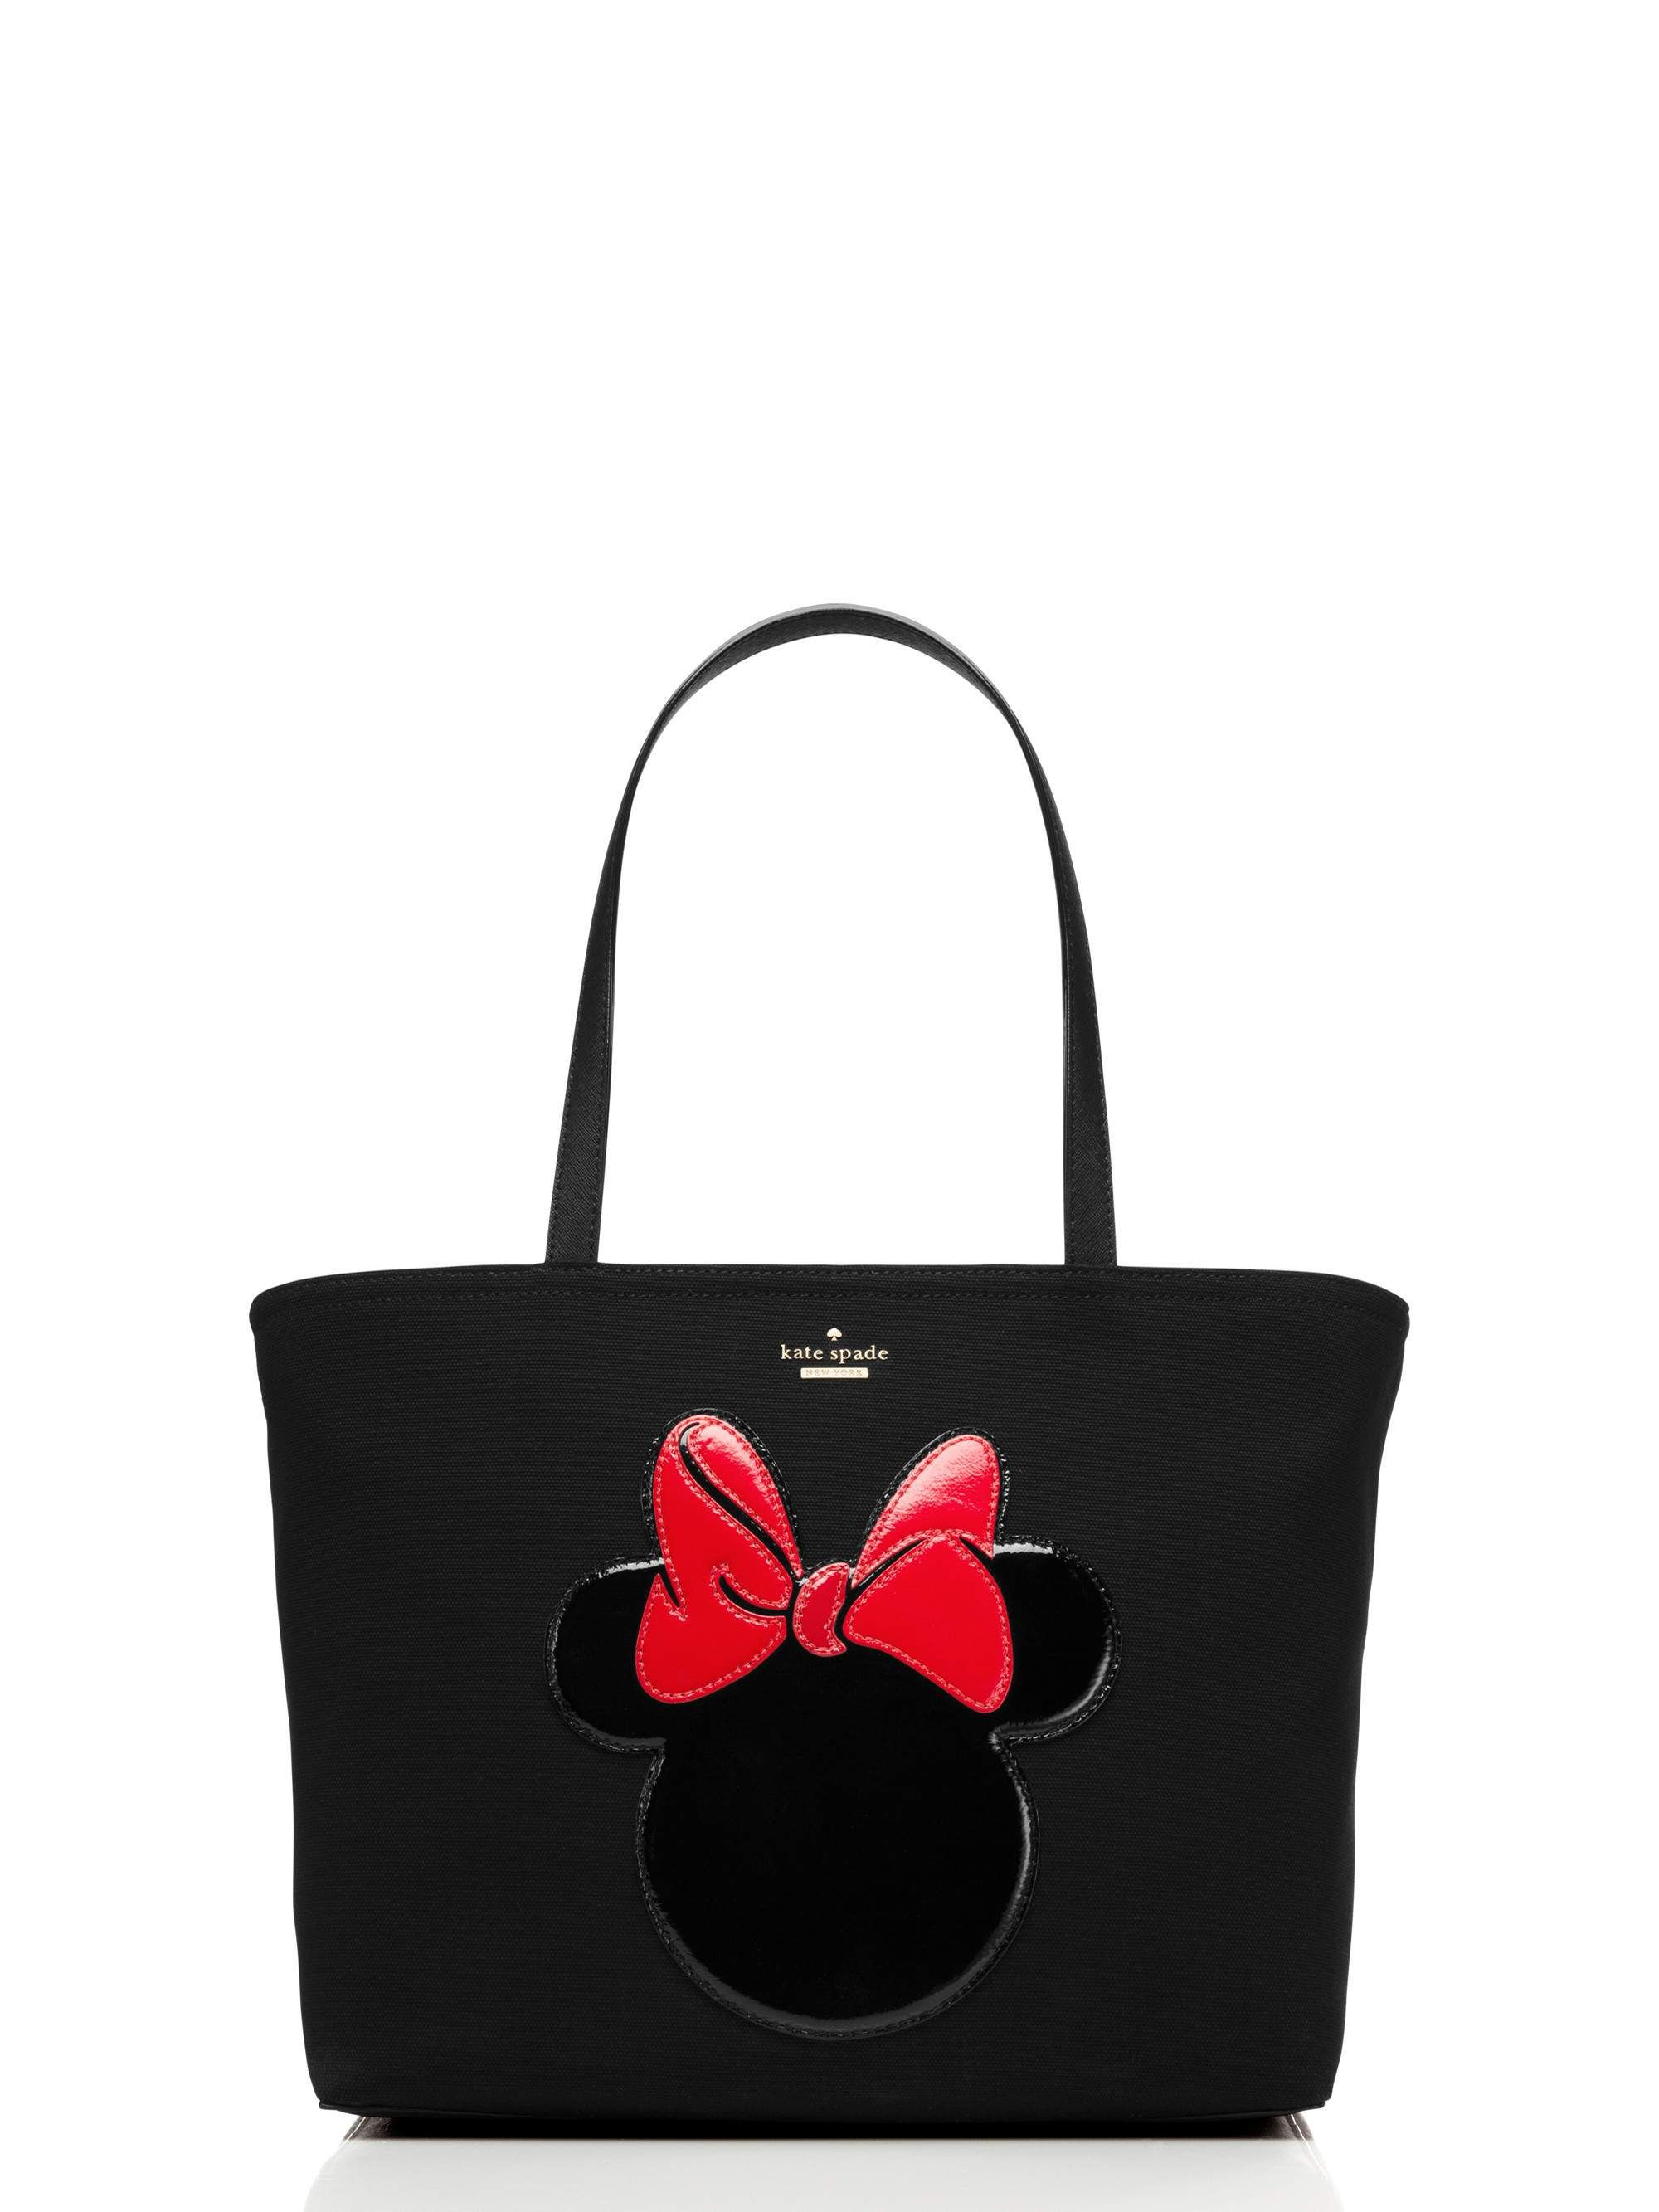 d0559b8d4fd kate spade new york for minnie mouse francis - Kate Spade New York